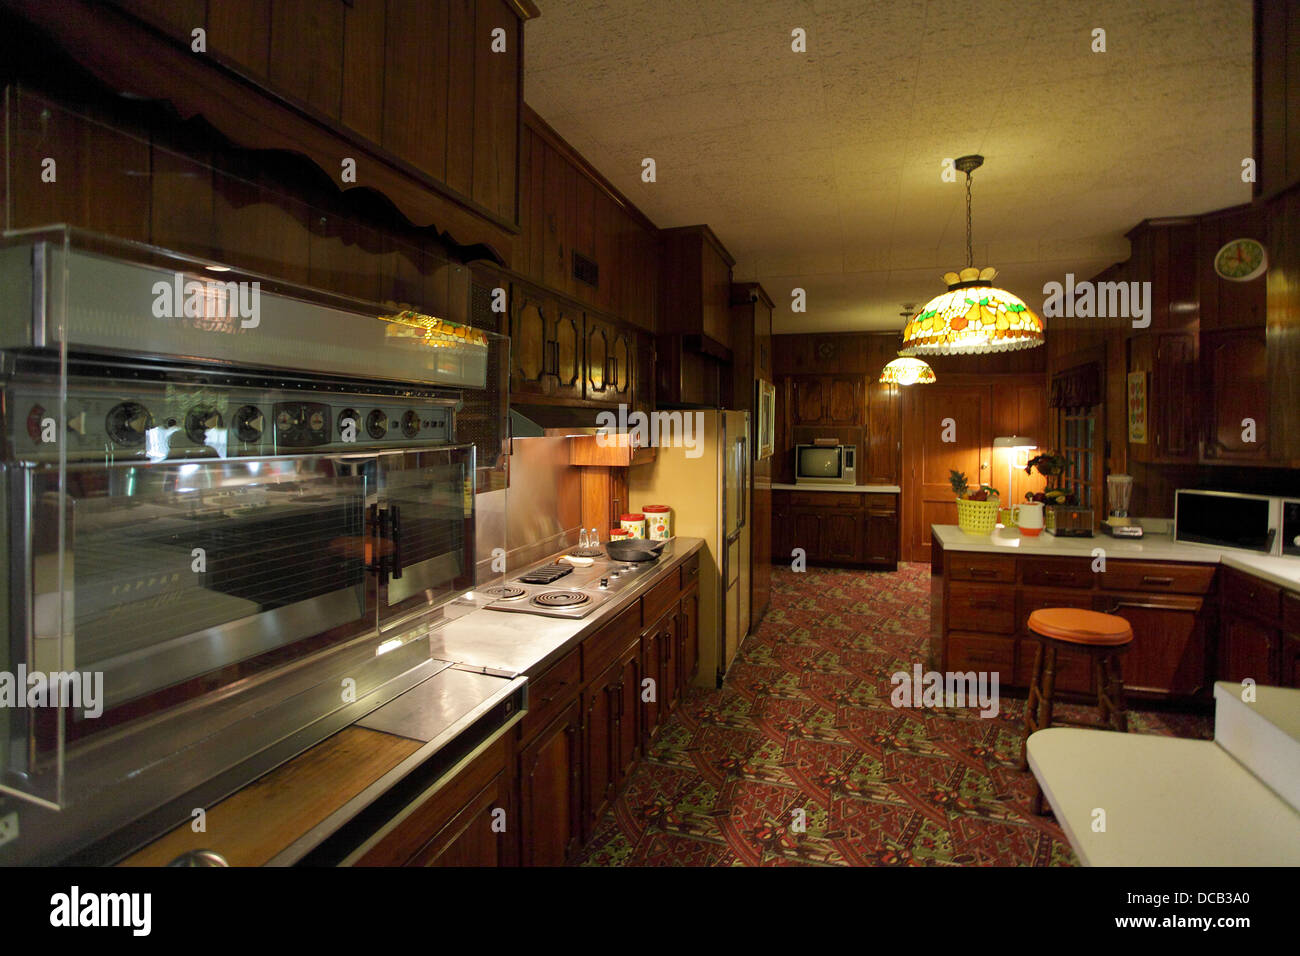 The Kitchen At Graceland The Home Of Elvis Presley In